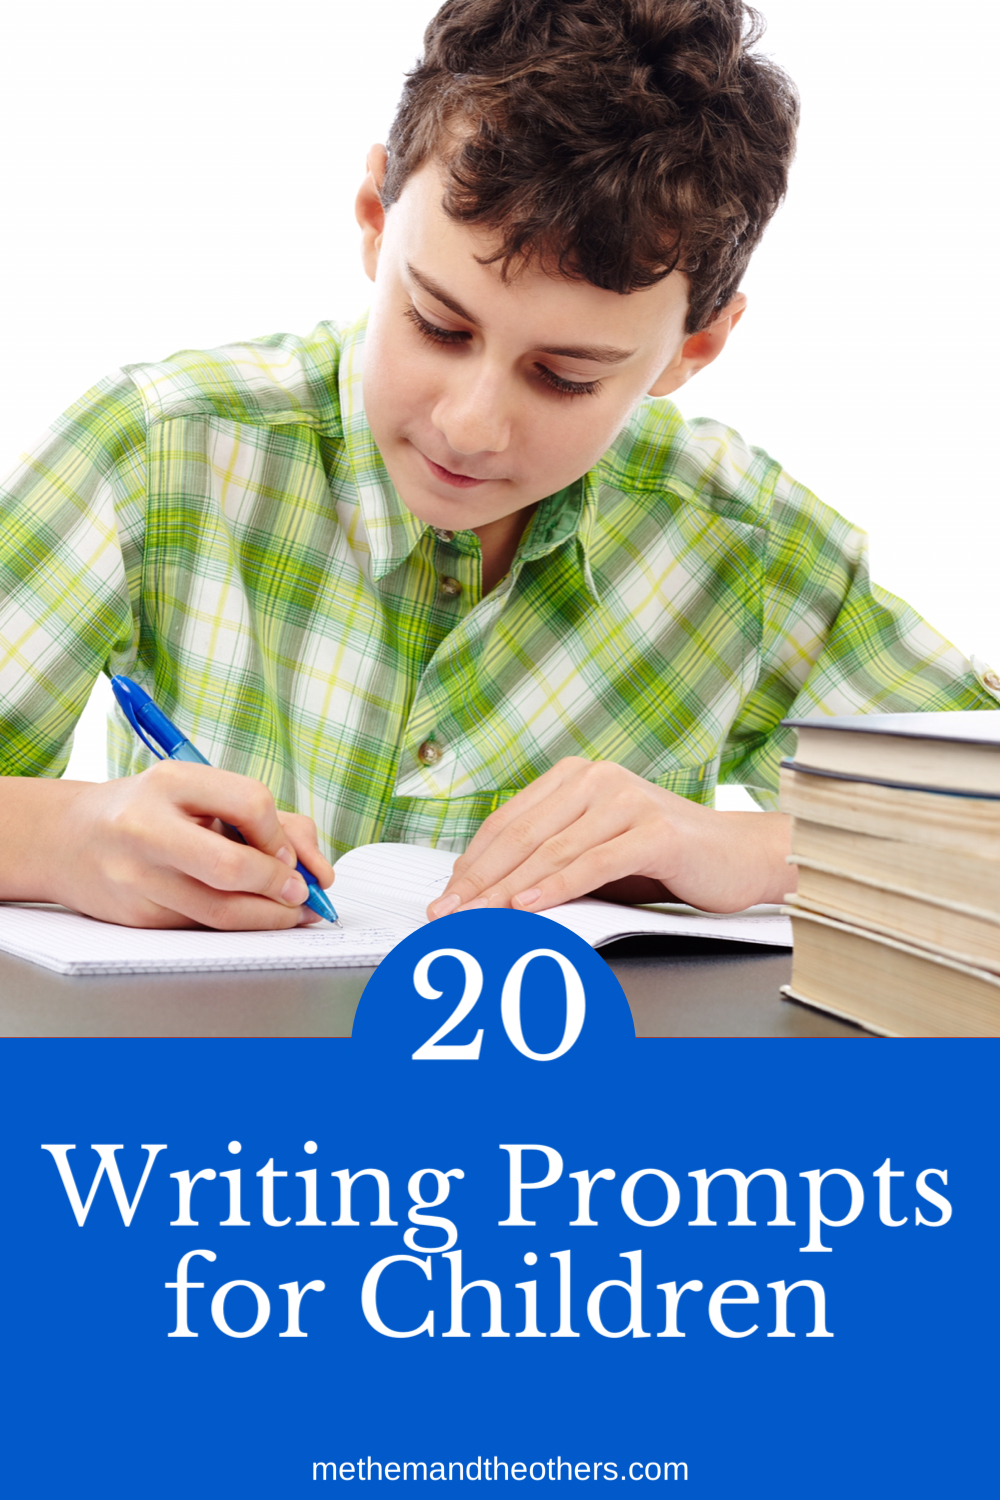 20 writing prompts for children